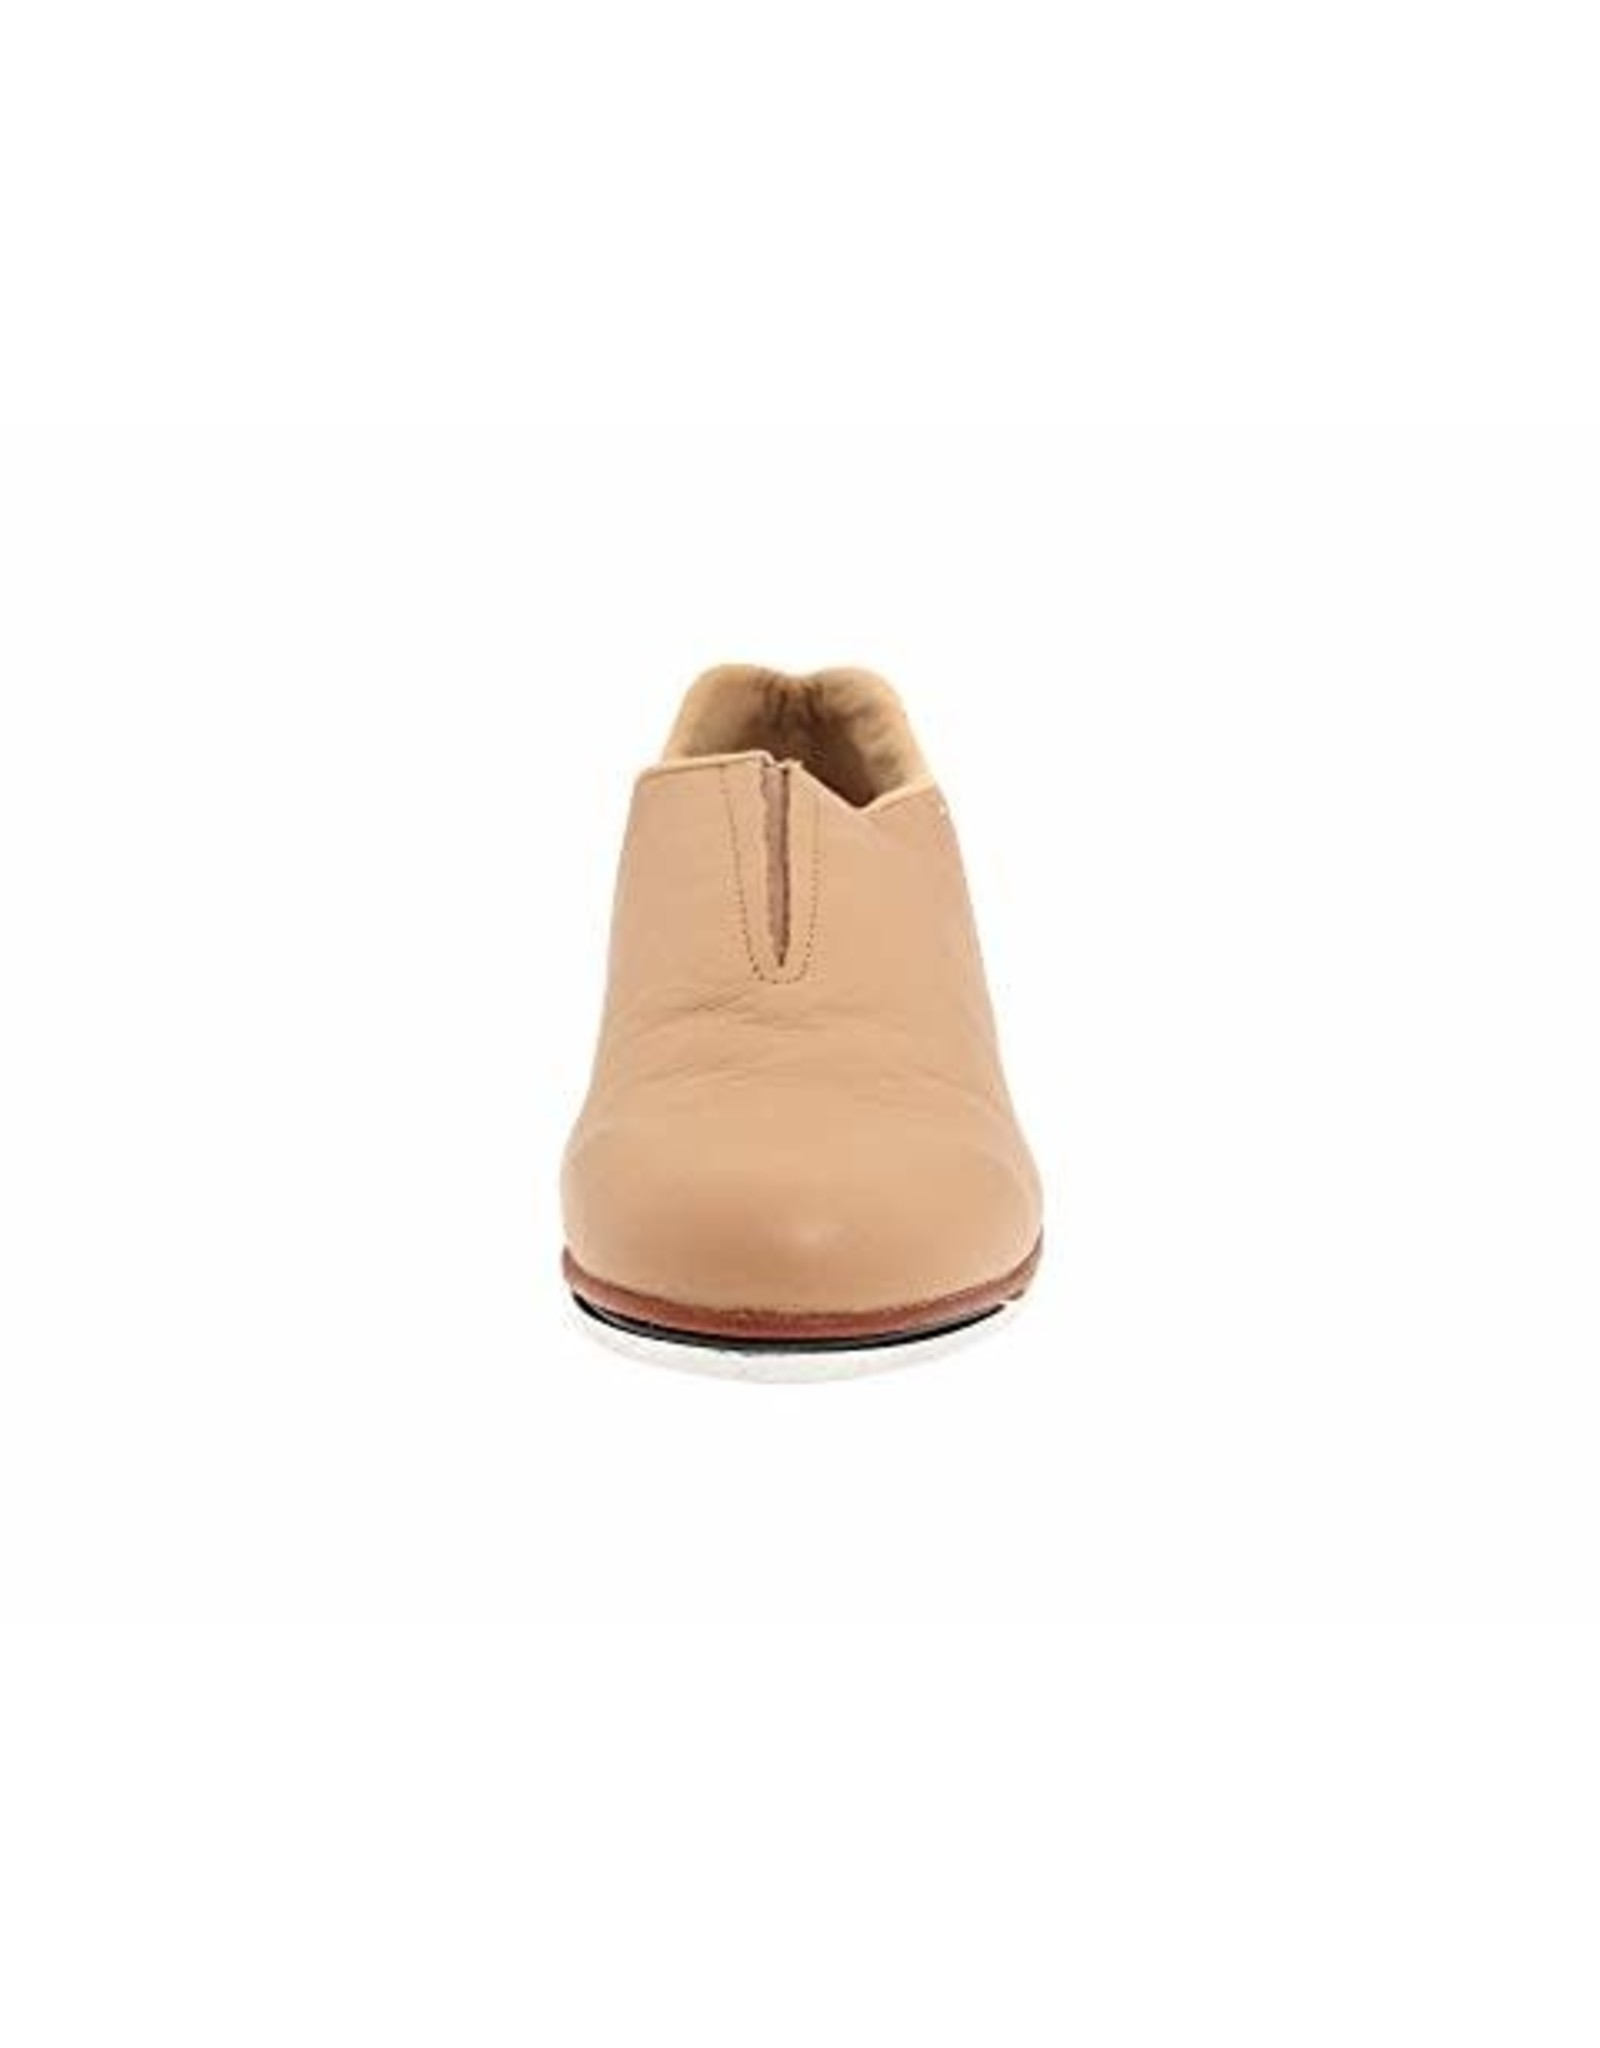 Bloch Bloch Tap Flex Slip On - Tan 10 N